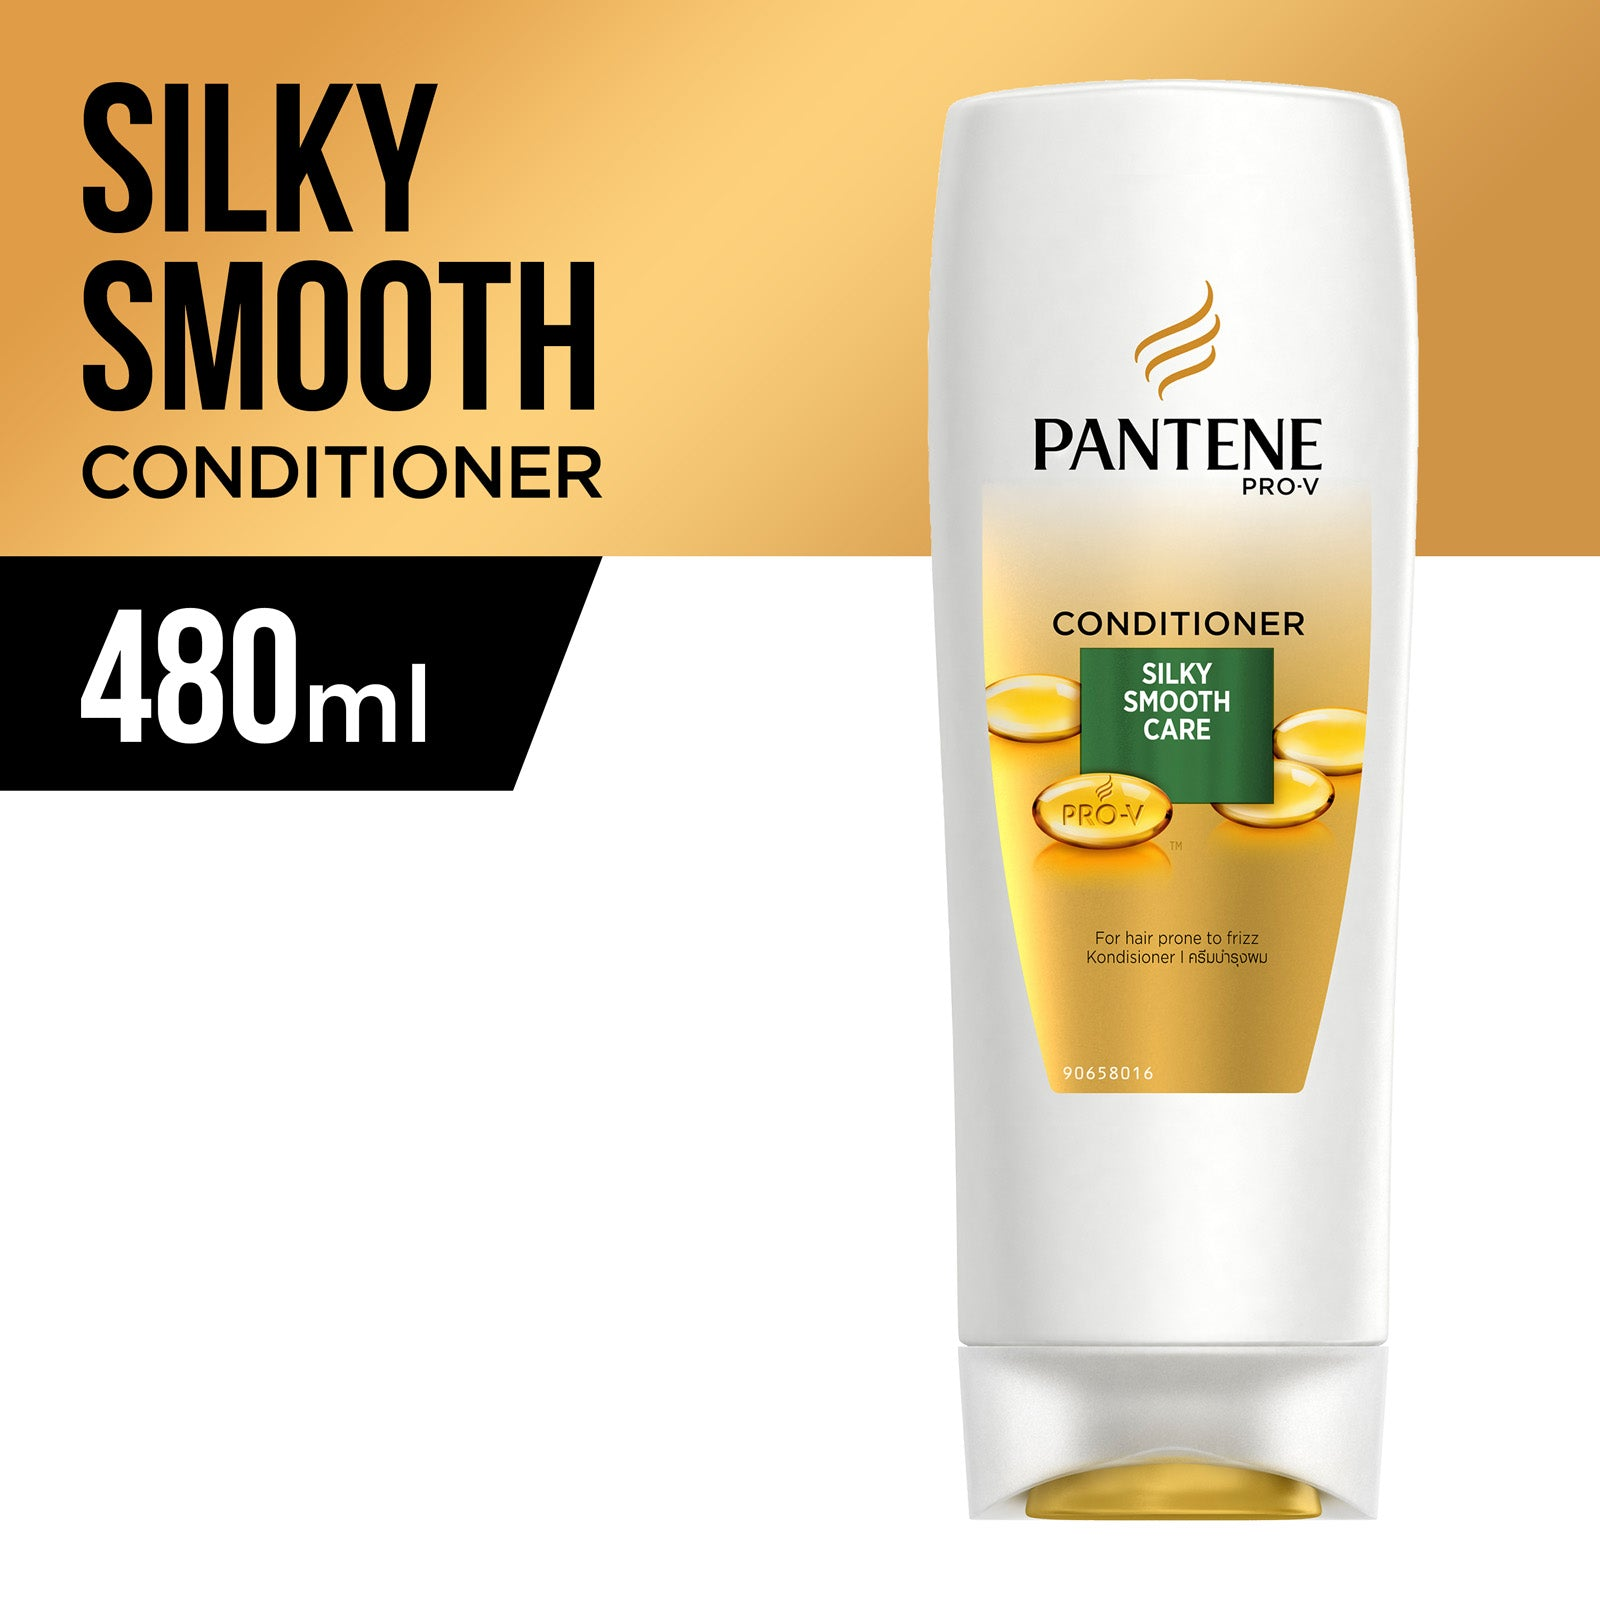 Pantene Silky Smooth Care Conditioner 480 ml